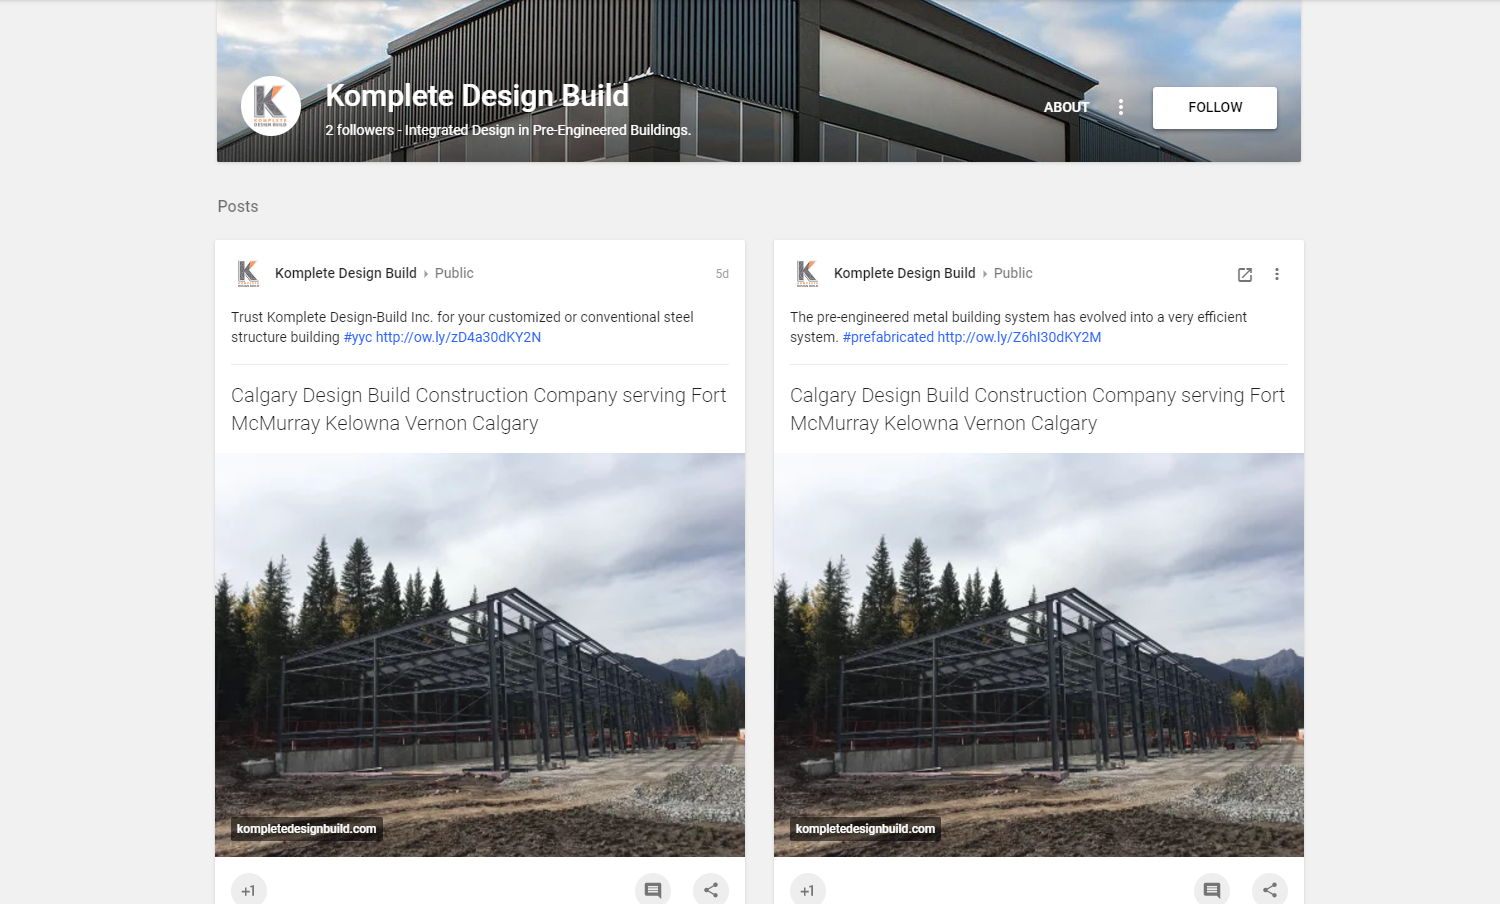 social media marketing services calgary google plus komplete design build